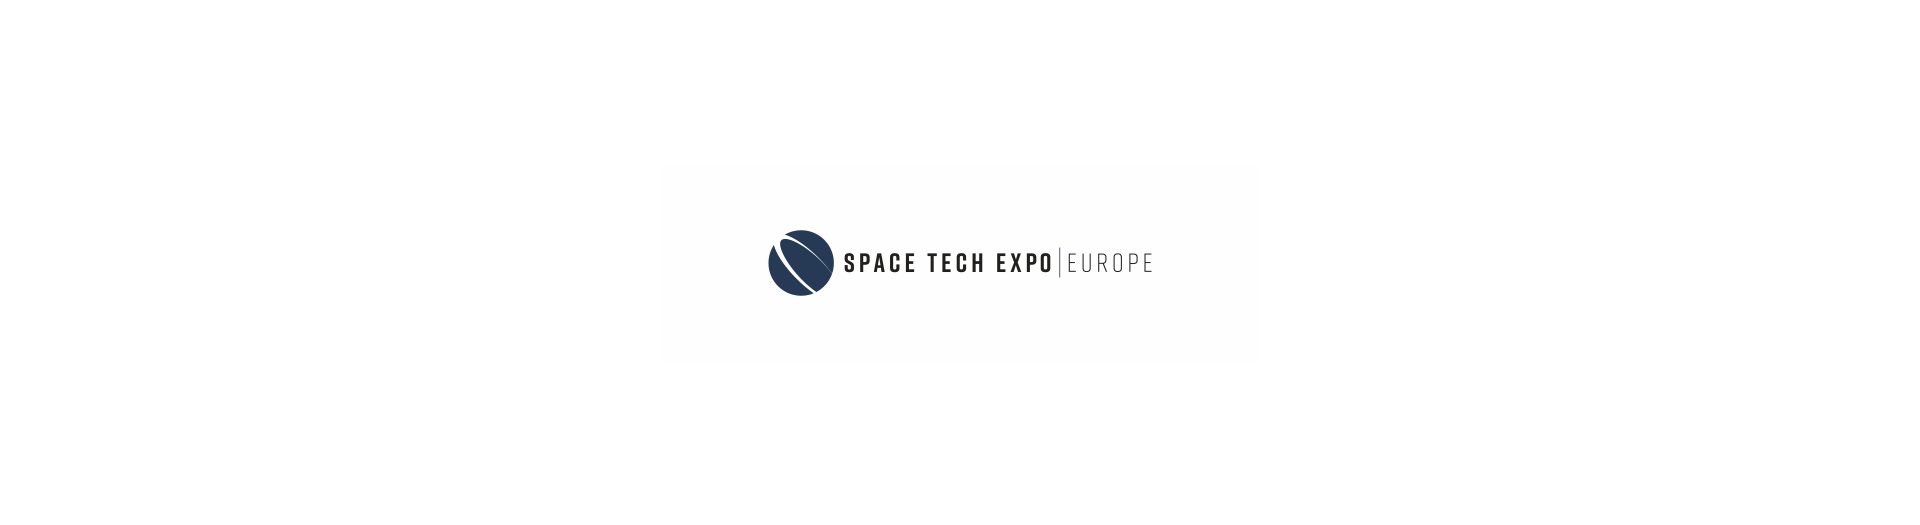 Space Tech Expo Europe 2019 - Bremen Germany